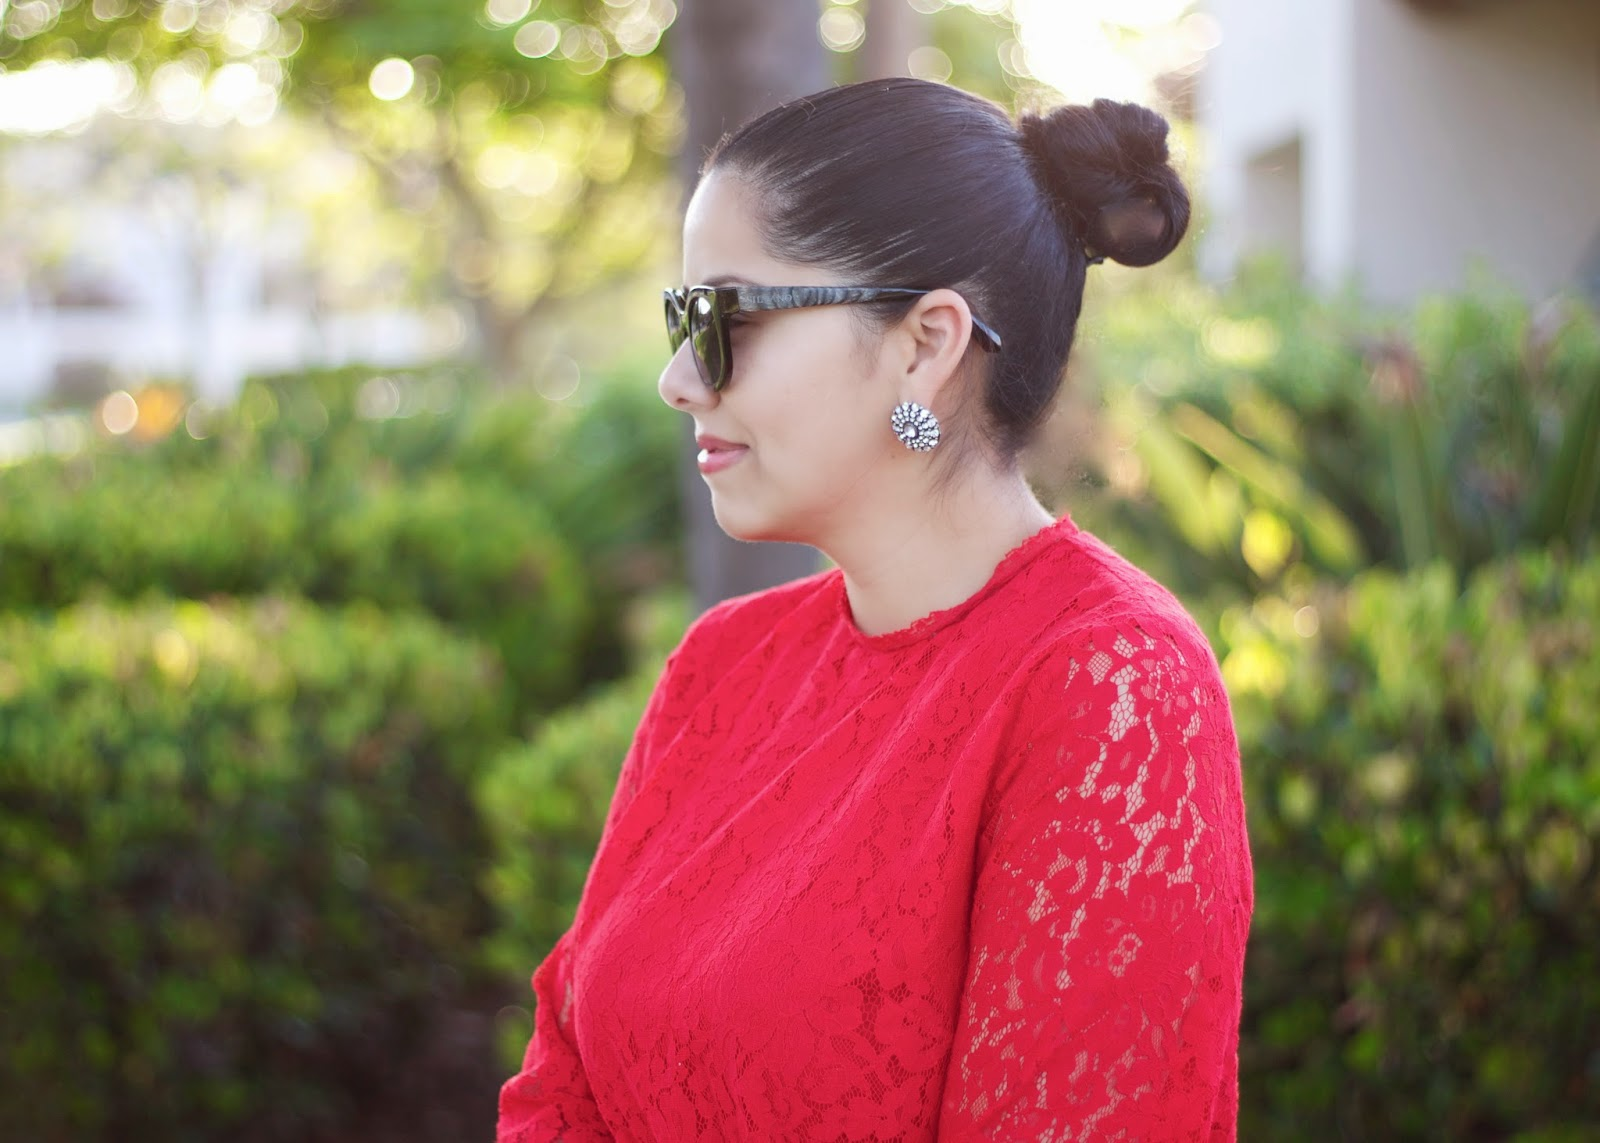 San diego style blogger, sock bun fashion, Sparkly large stud earrings, silvano sunglasses